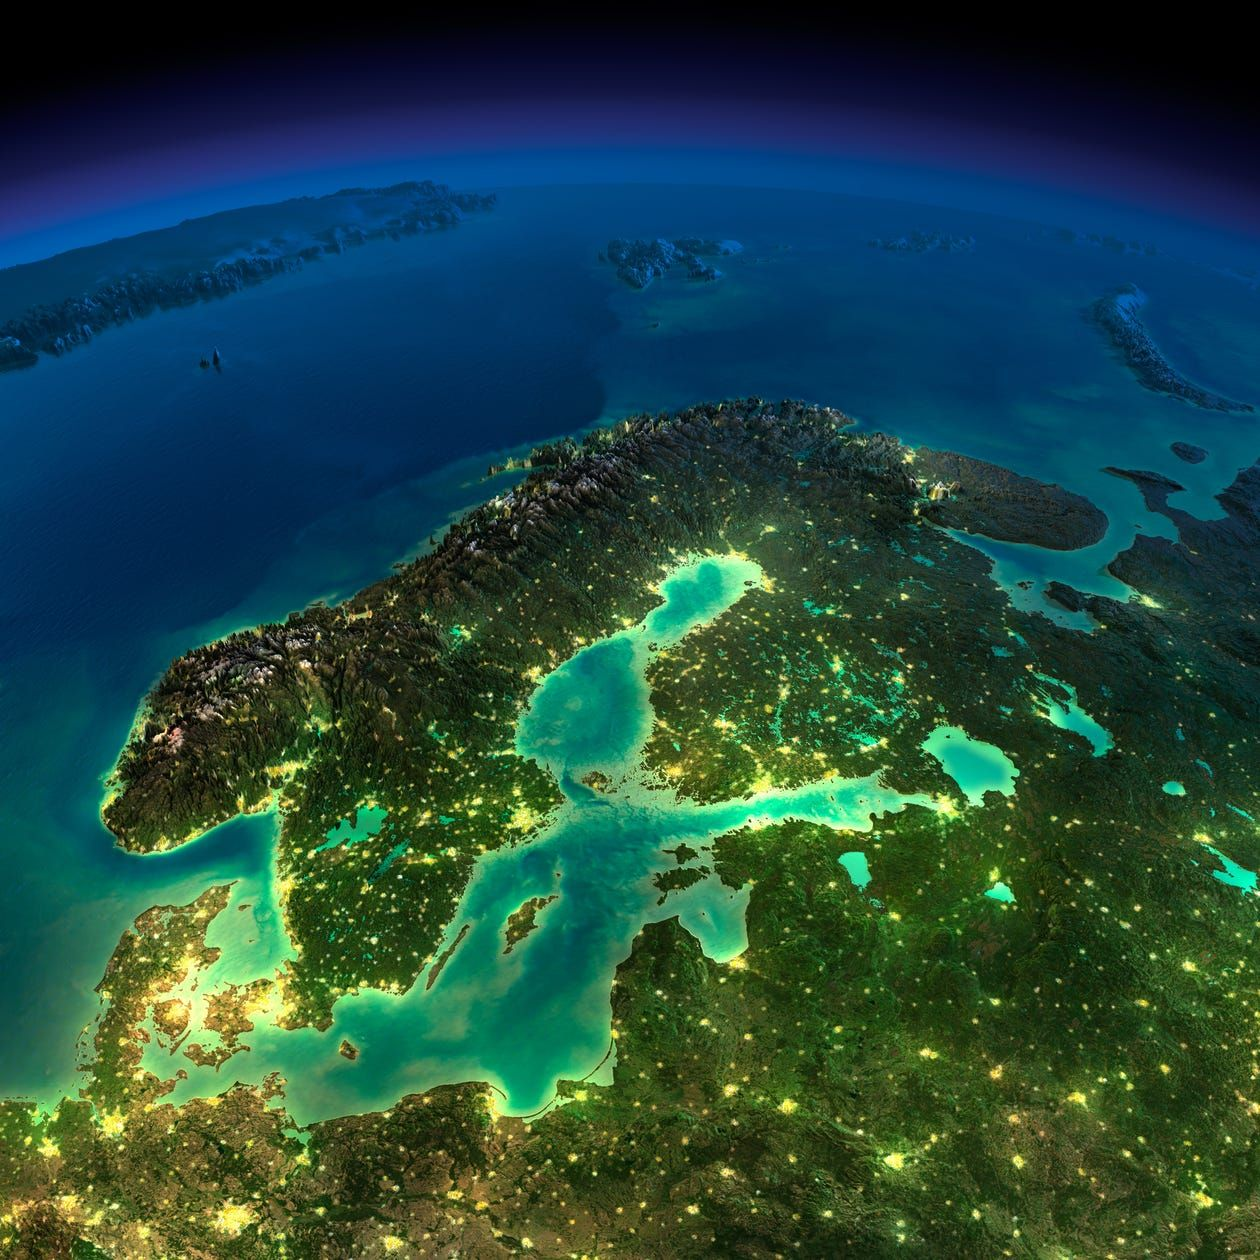 19 incredible artificial satellite photos of Earth at